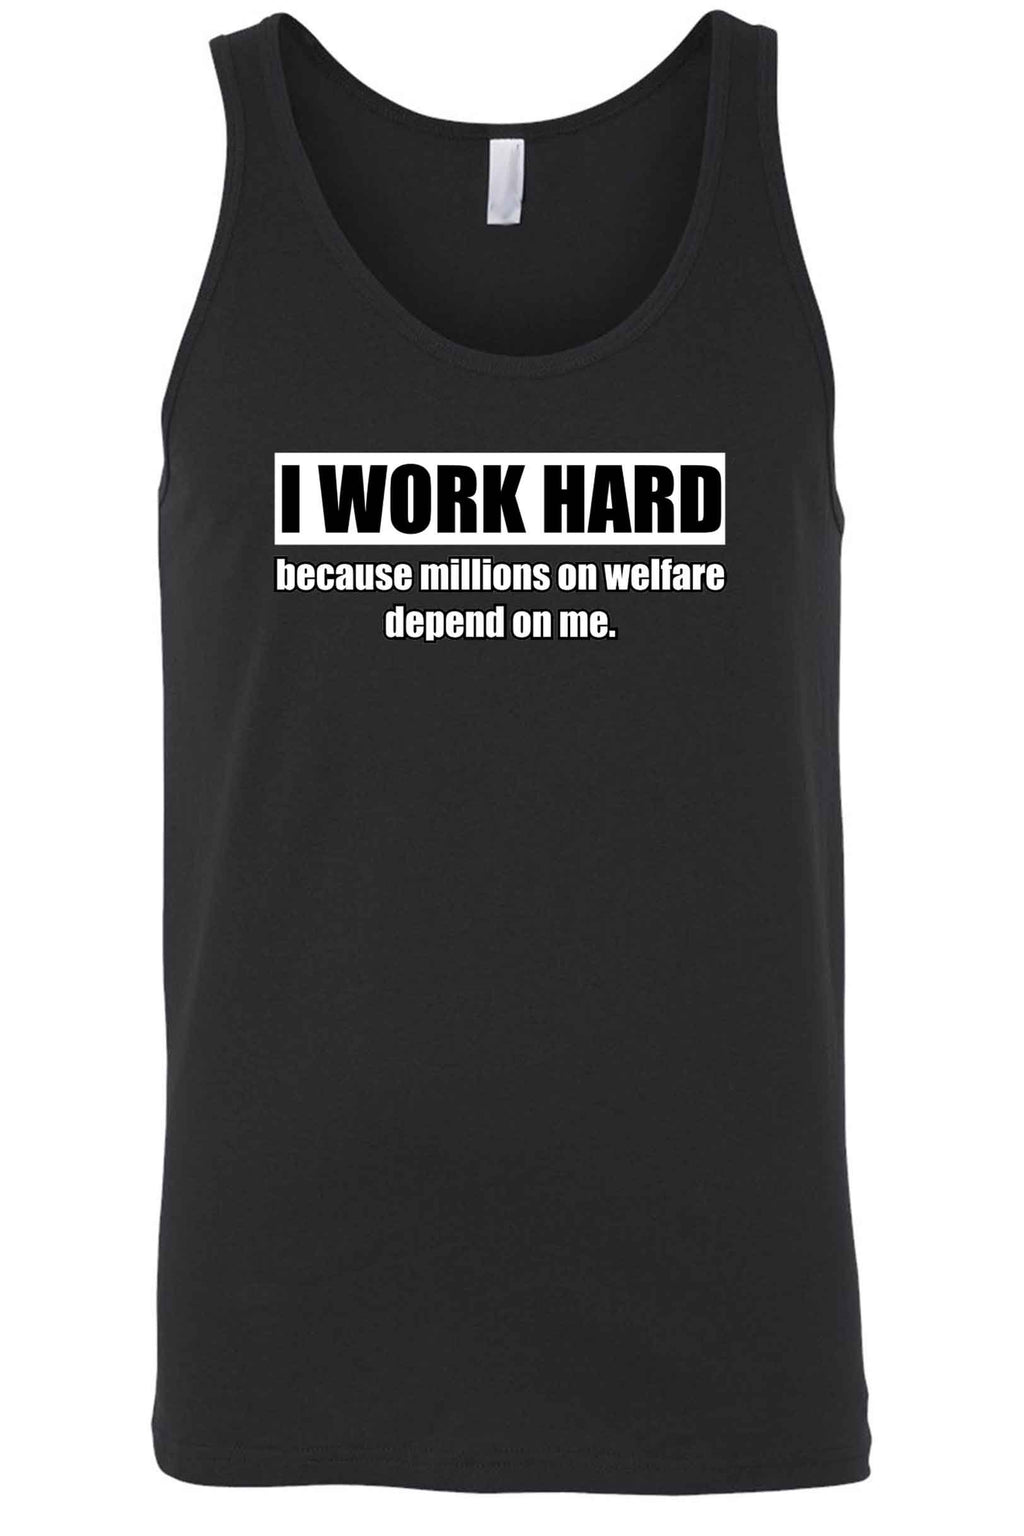 Men's I Work Hard Millions on Welfare Depend on Me Tank Top Shirt